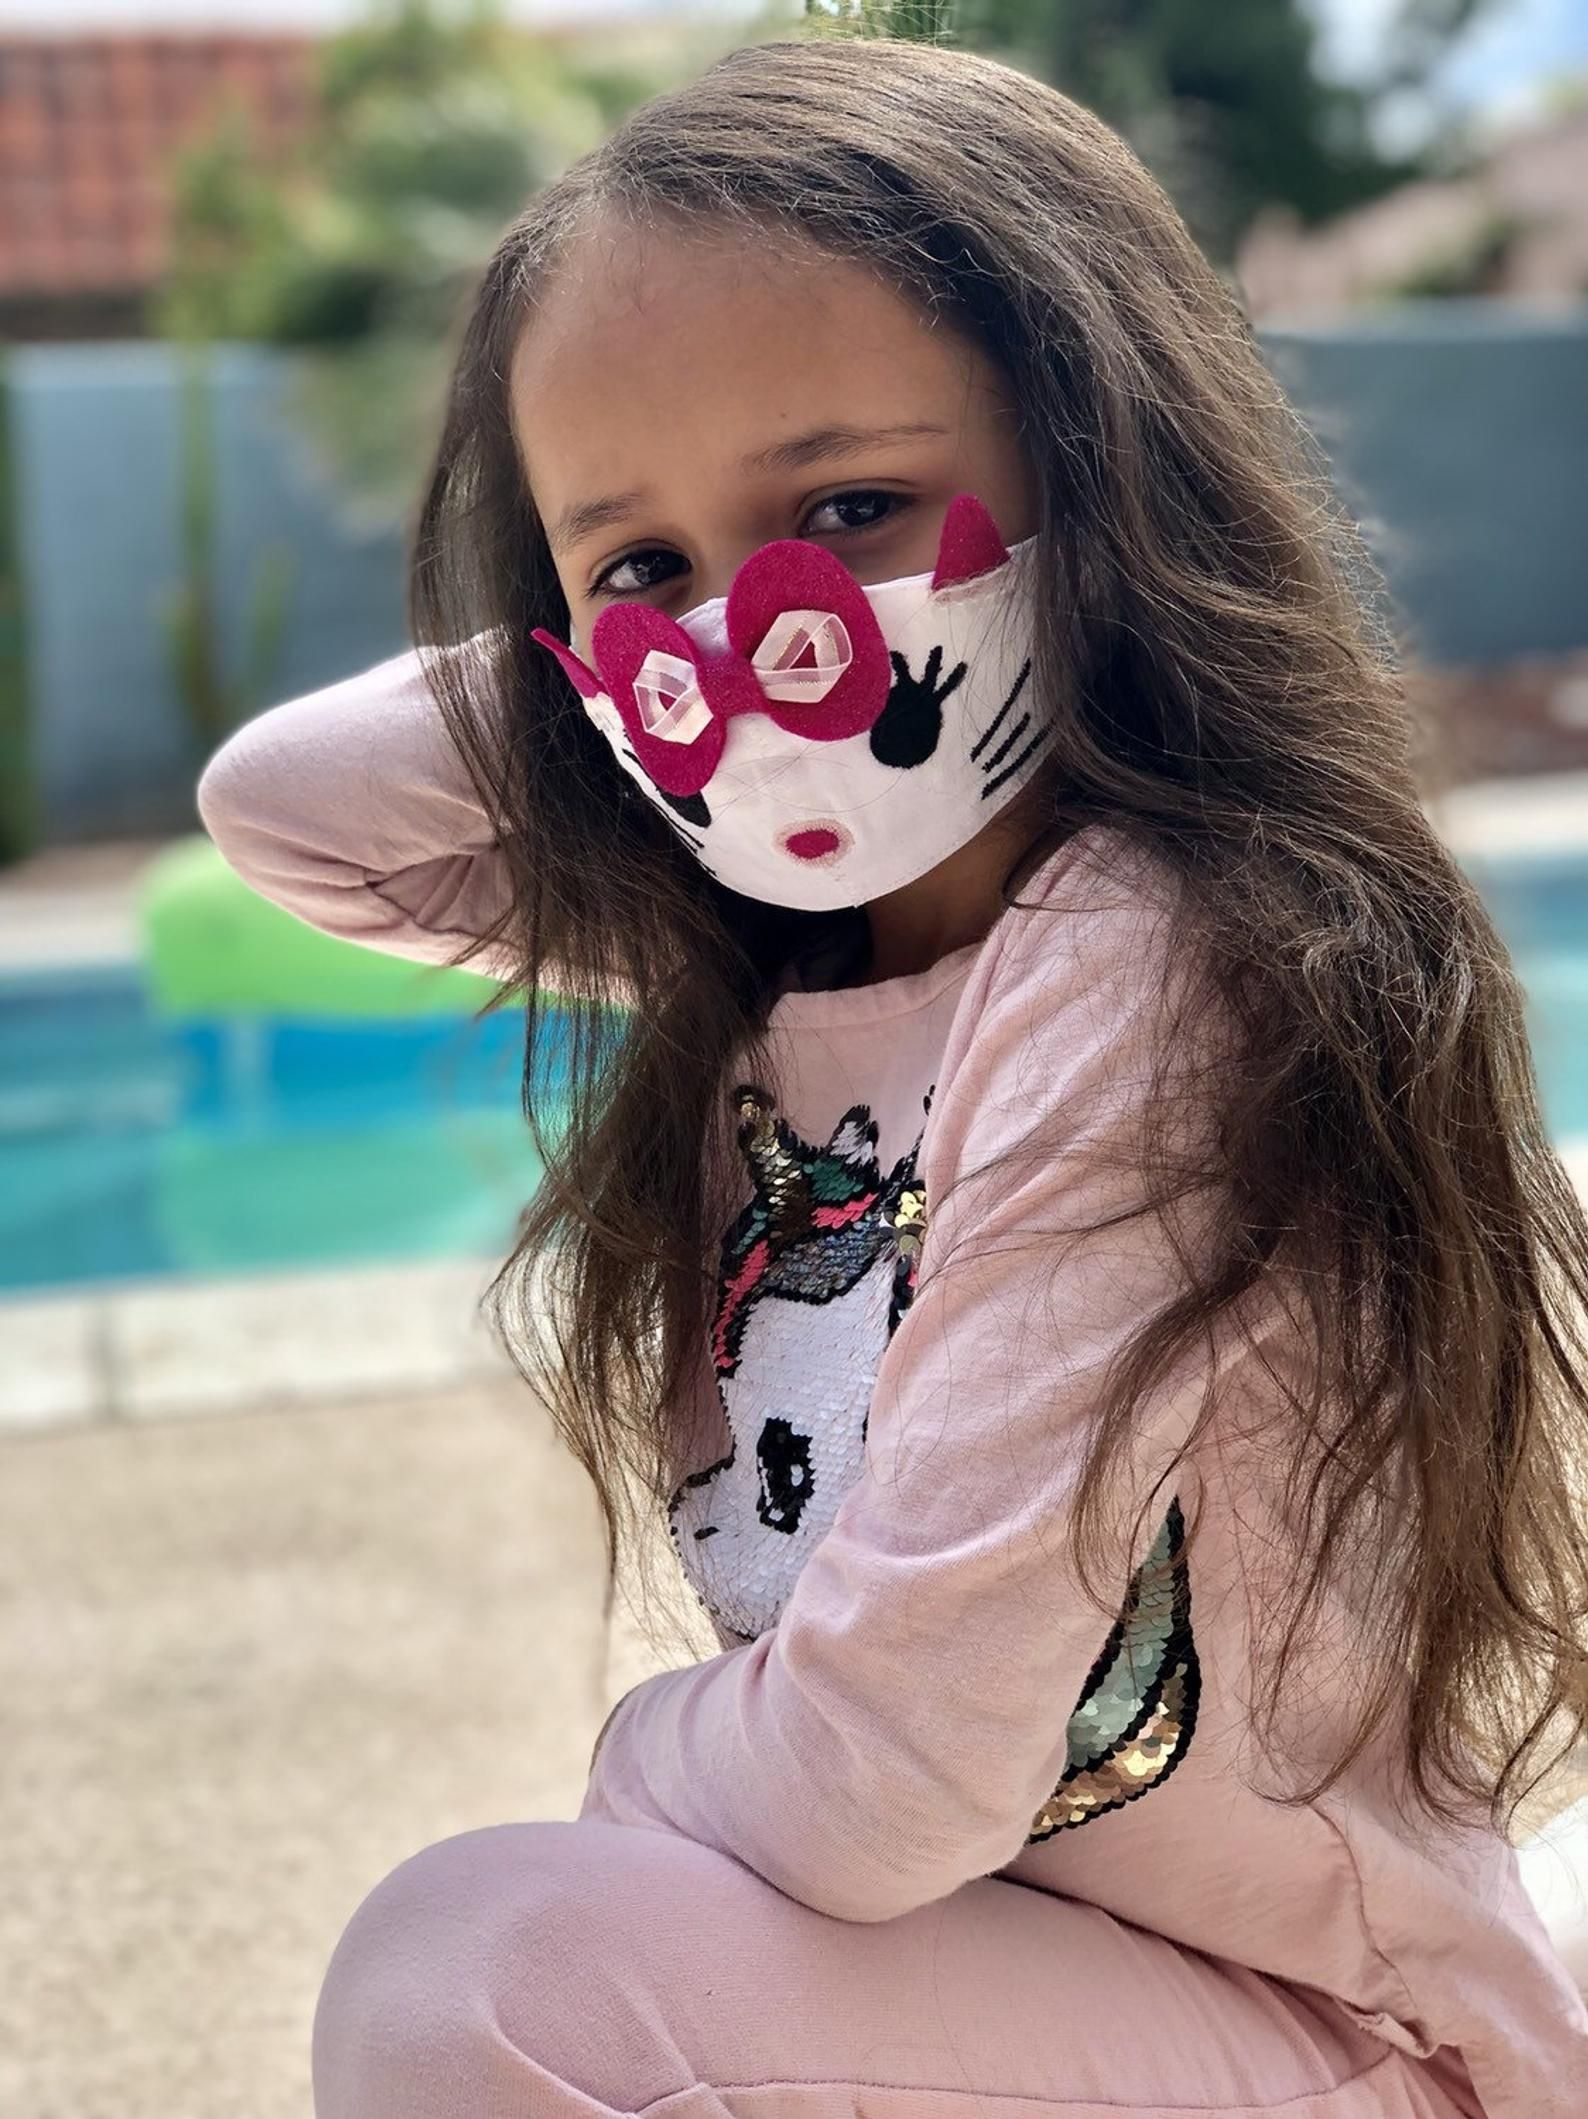 Face Mask KIDS Protective Mask Reusable Washable Etsy in